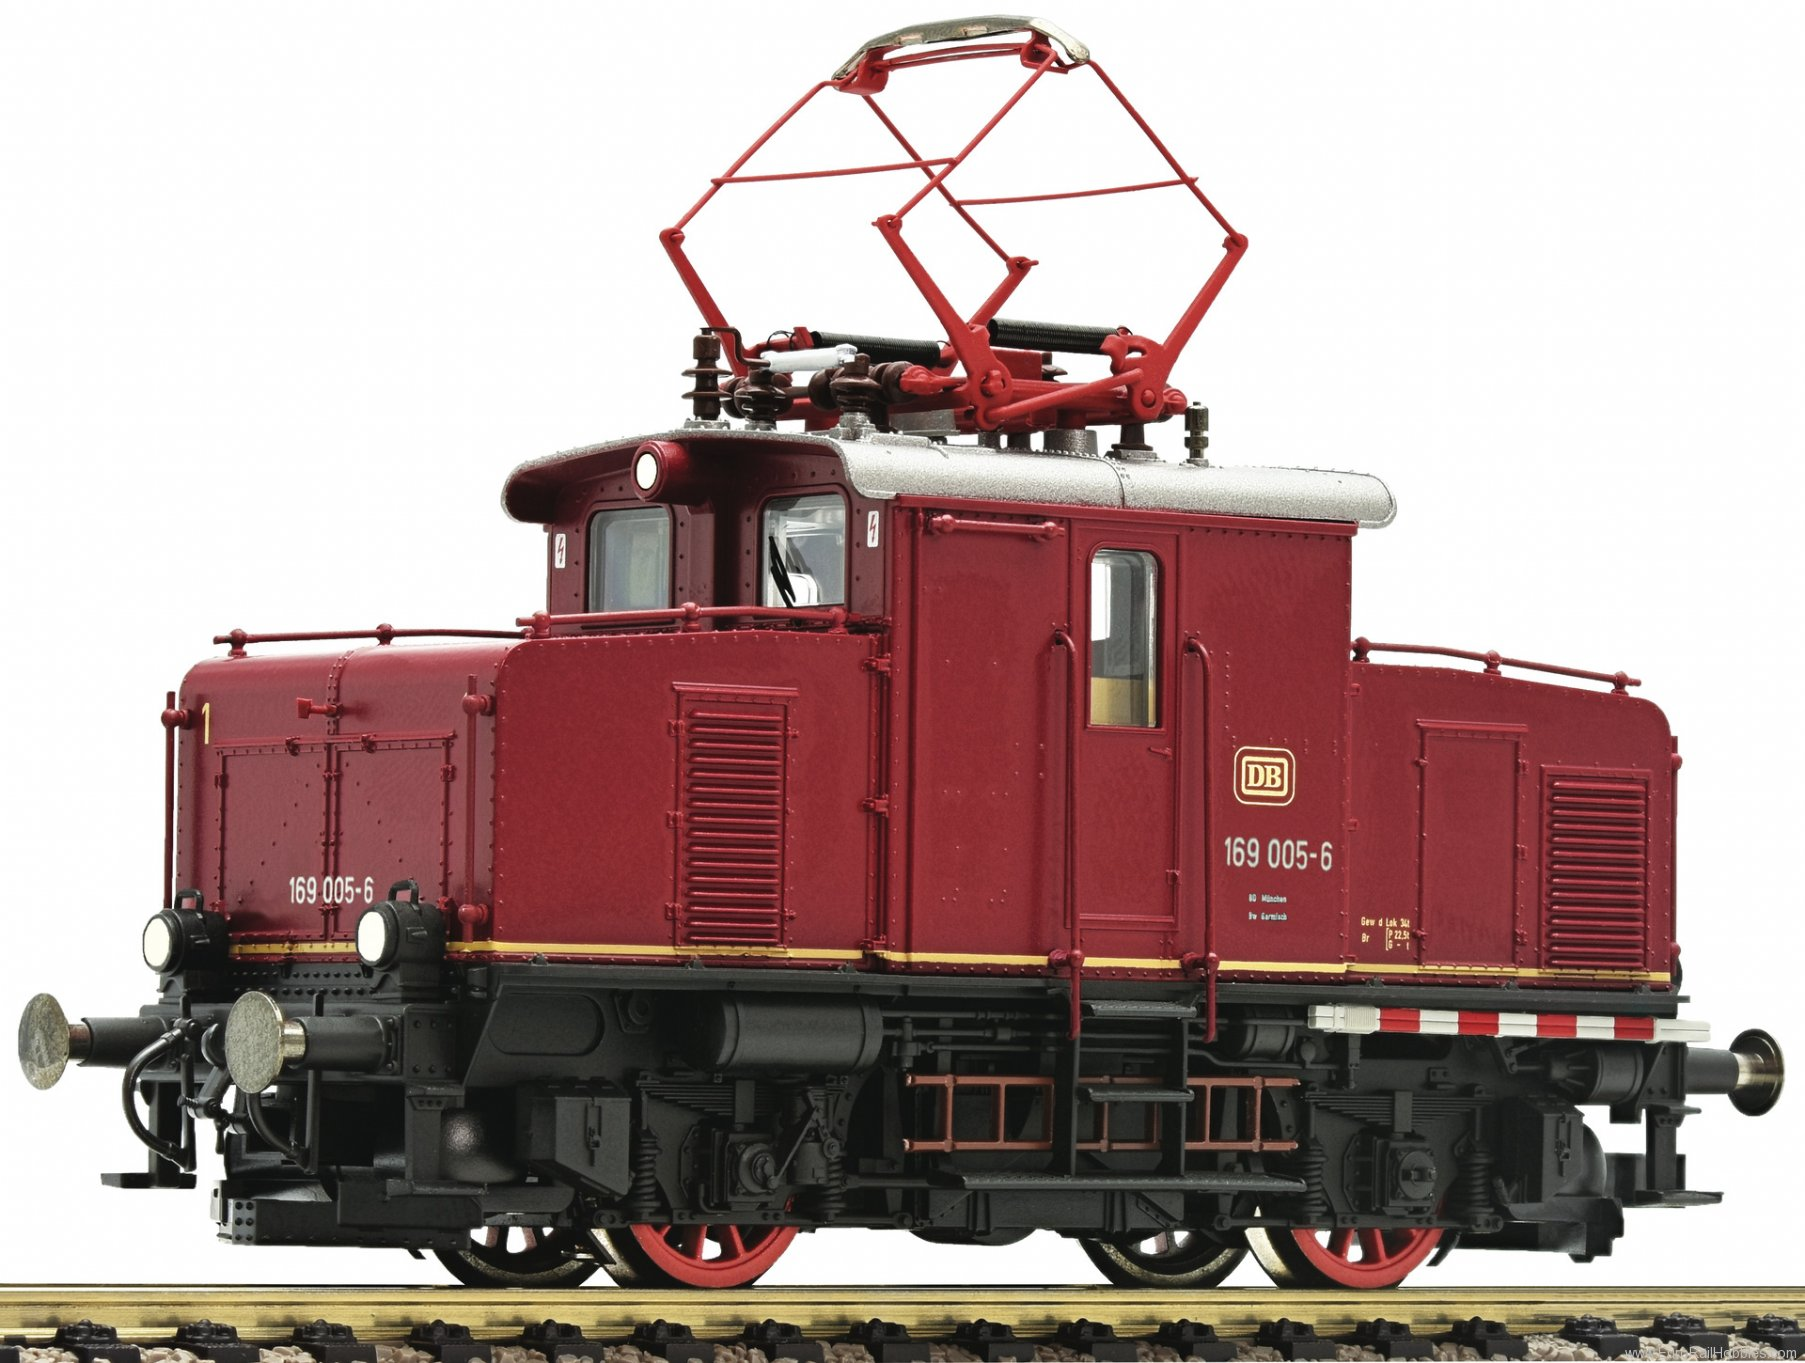 Fleischmann 430005 DB Electric locomotive 169 005-6, (DCC)